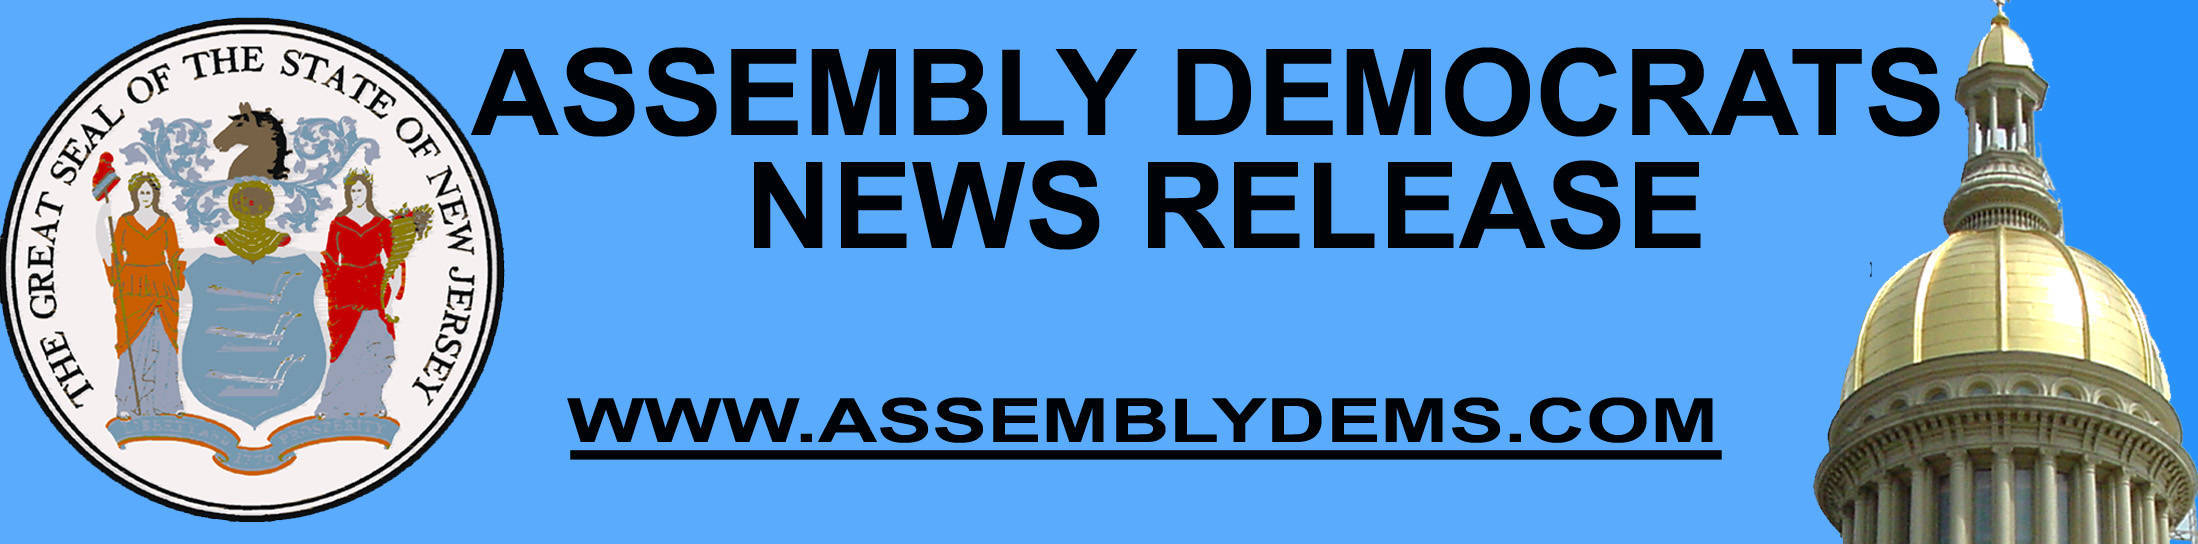 021c27e5aef308533b83_Assembly_Democrats.jpg